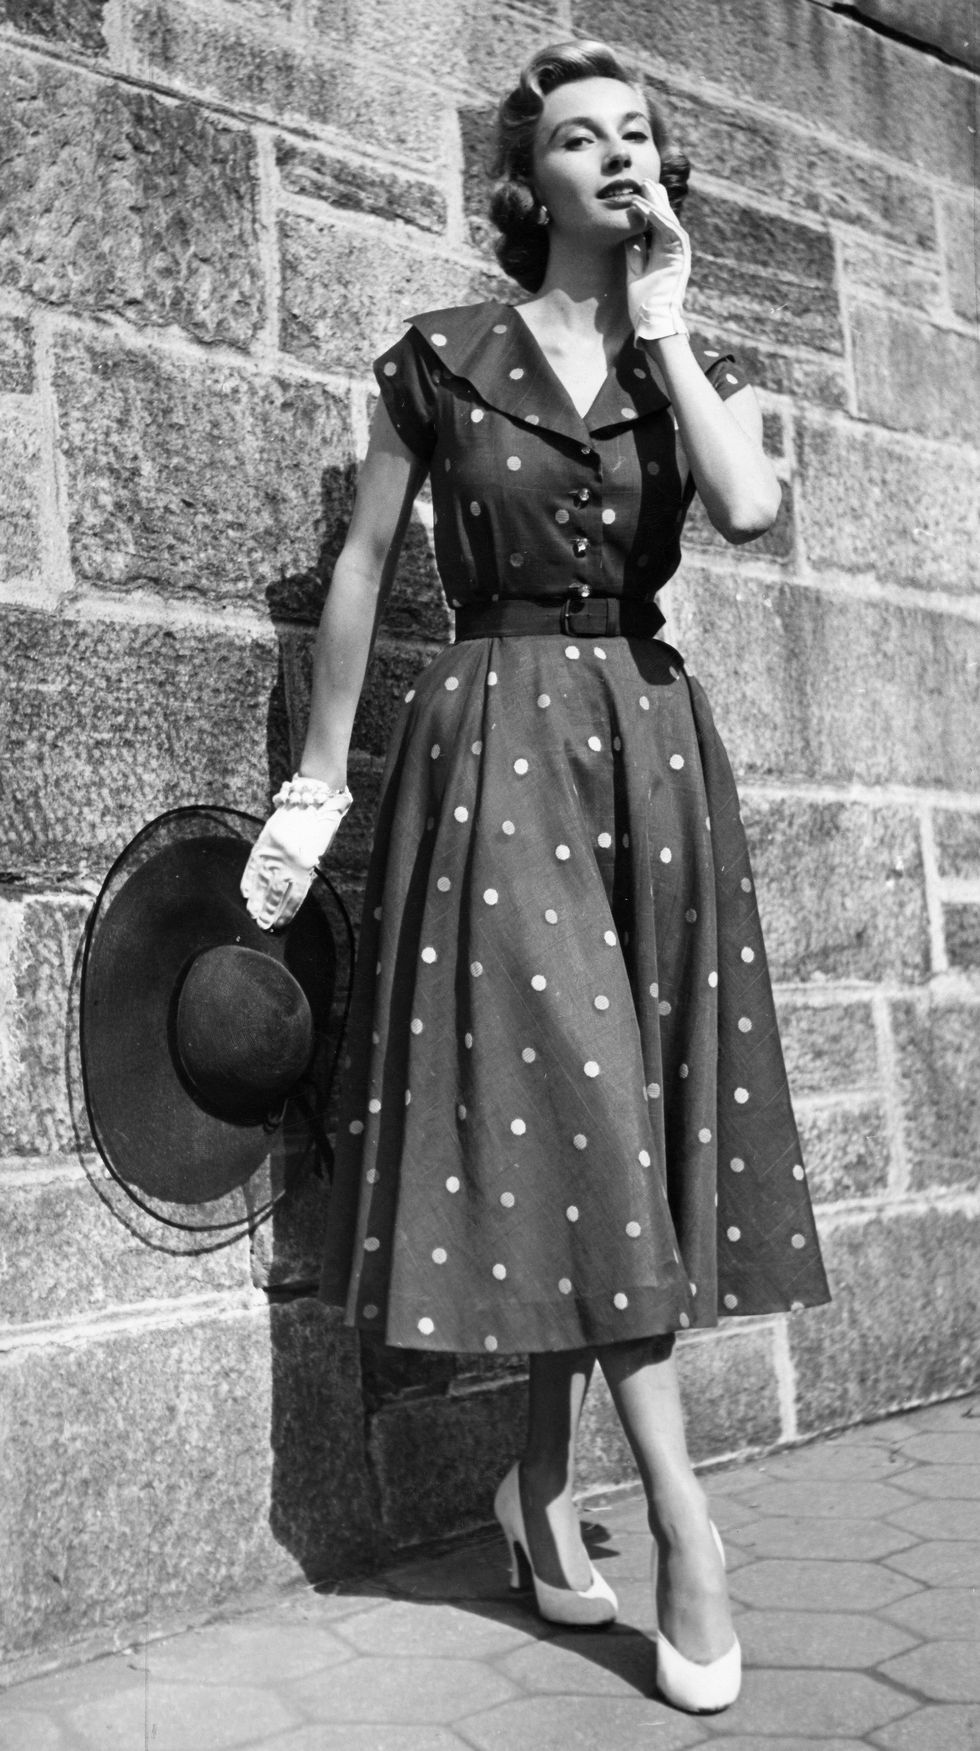 e4ca9a504a20 1950s Fashion Photos and Trends - Fashion Trends From The 50s  #FashionTrendsDresses